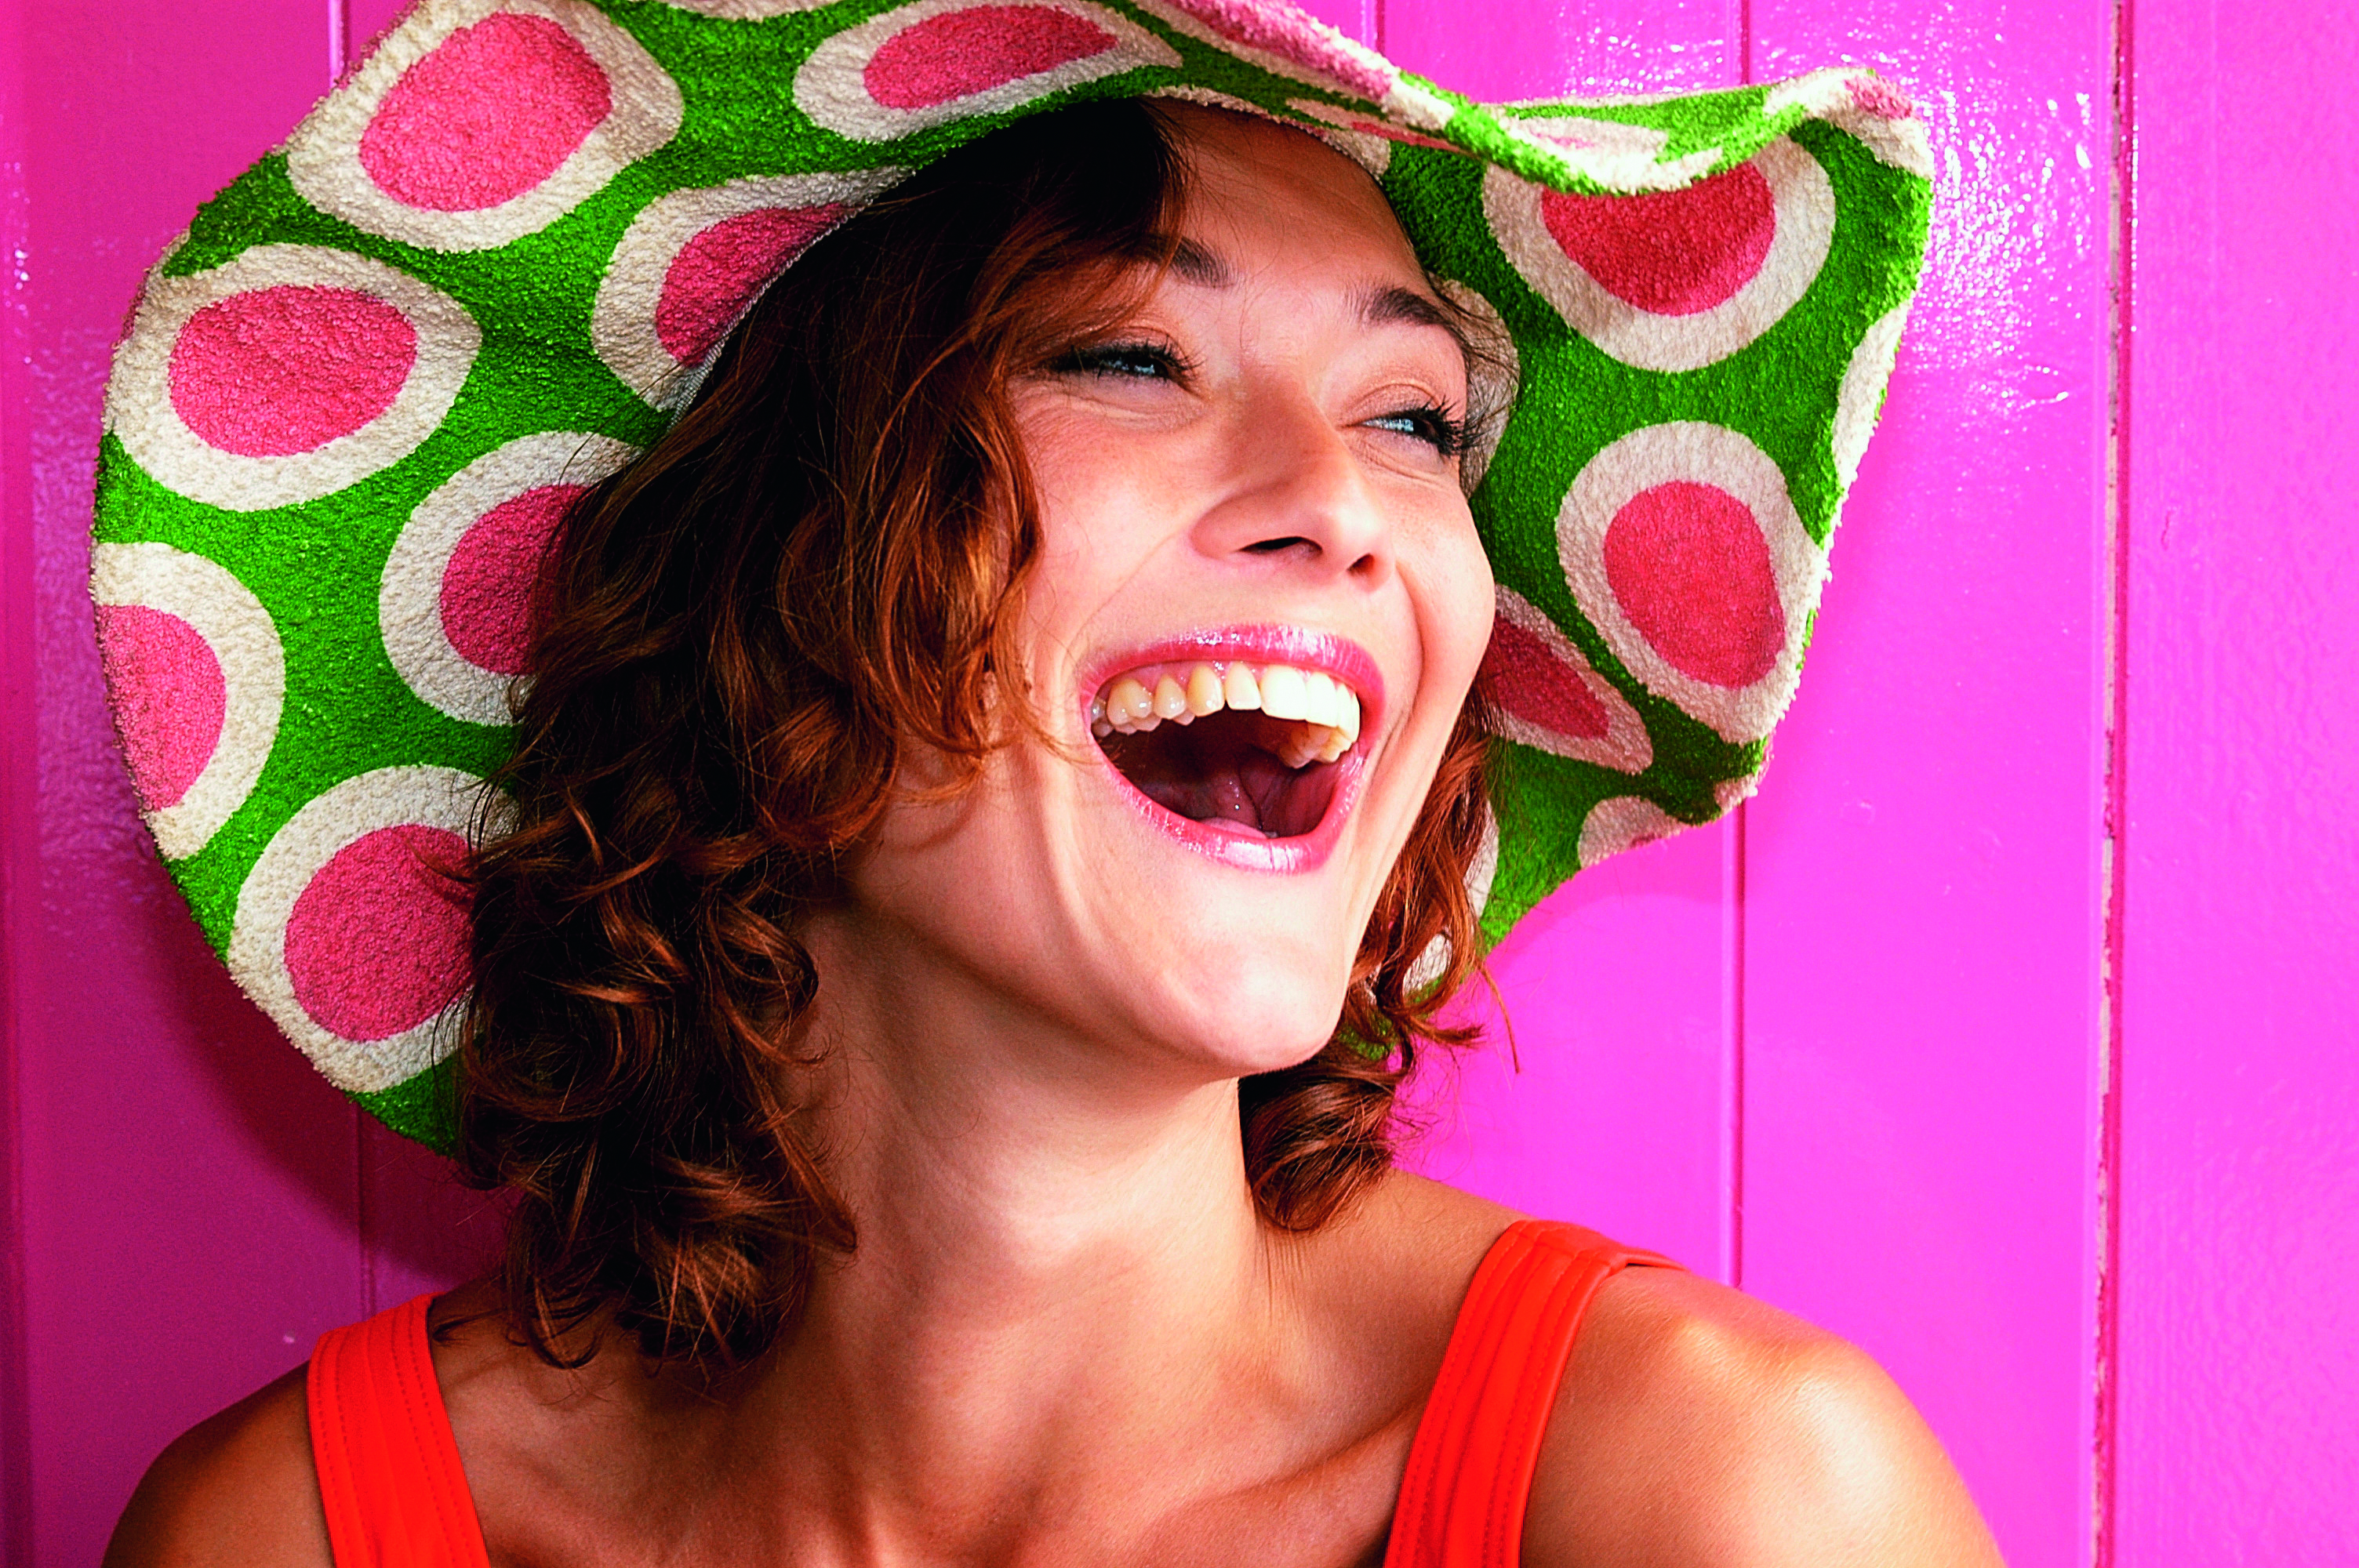 woman smiling, hat